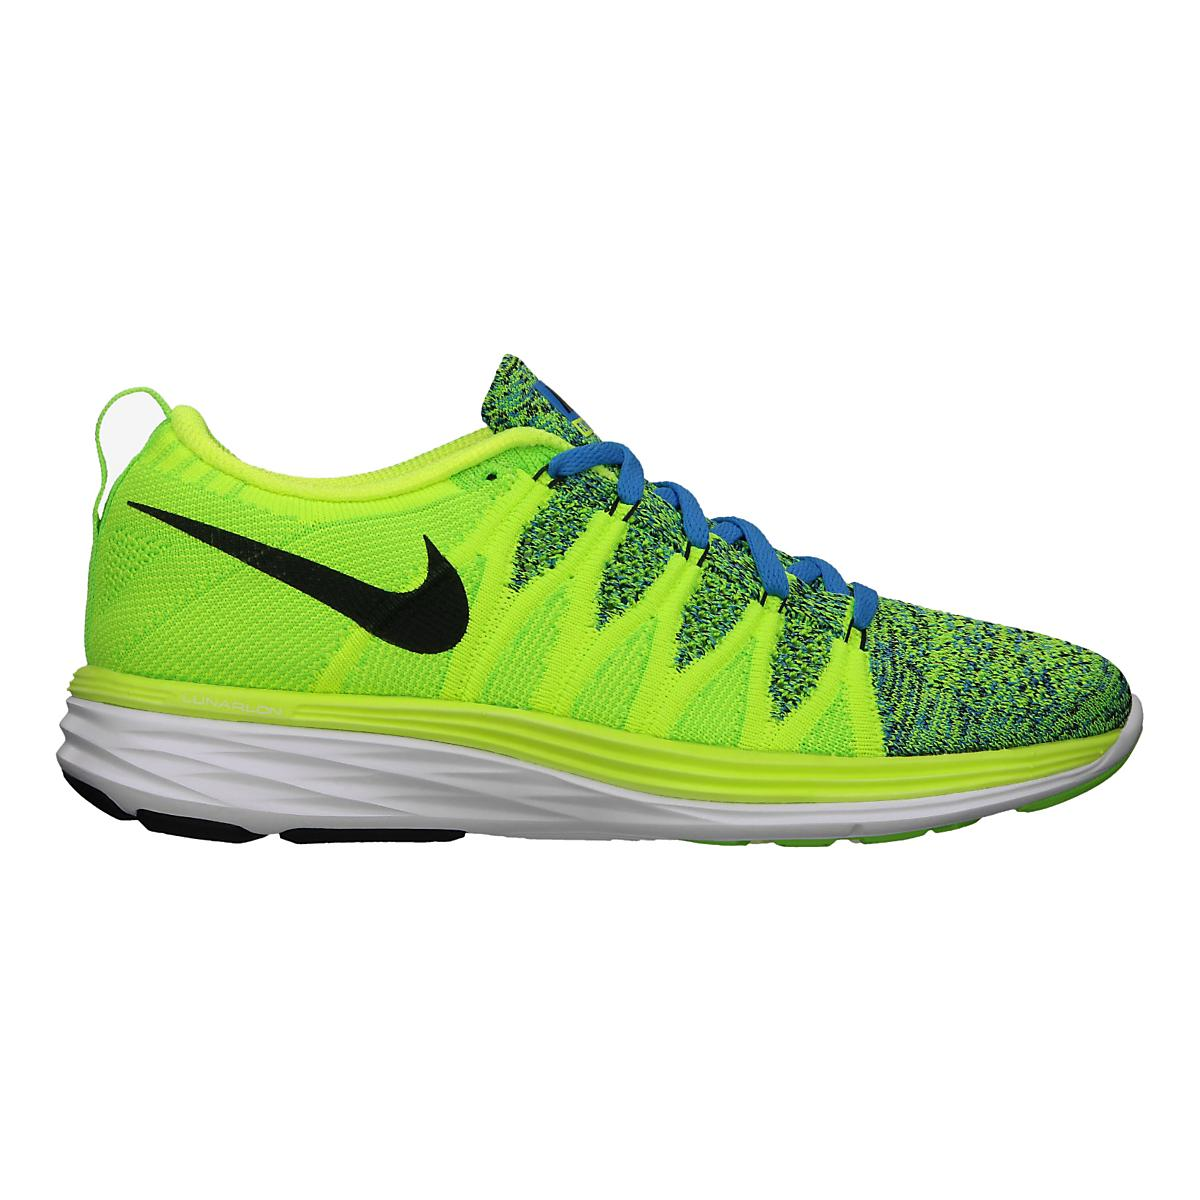 pretty nice c9c39 afa6f Mens Nike Flyknit Lunar2 Running Shoe at Road Runner Sports